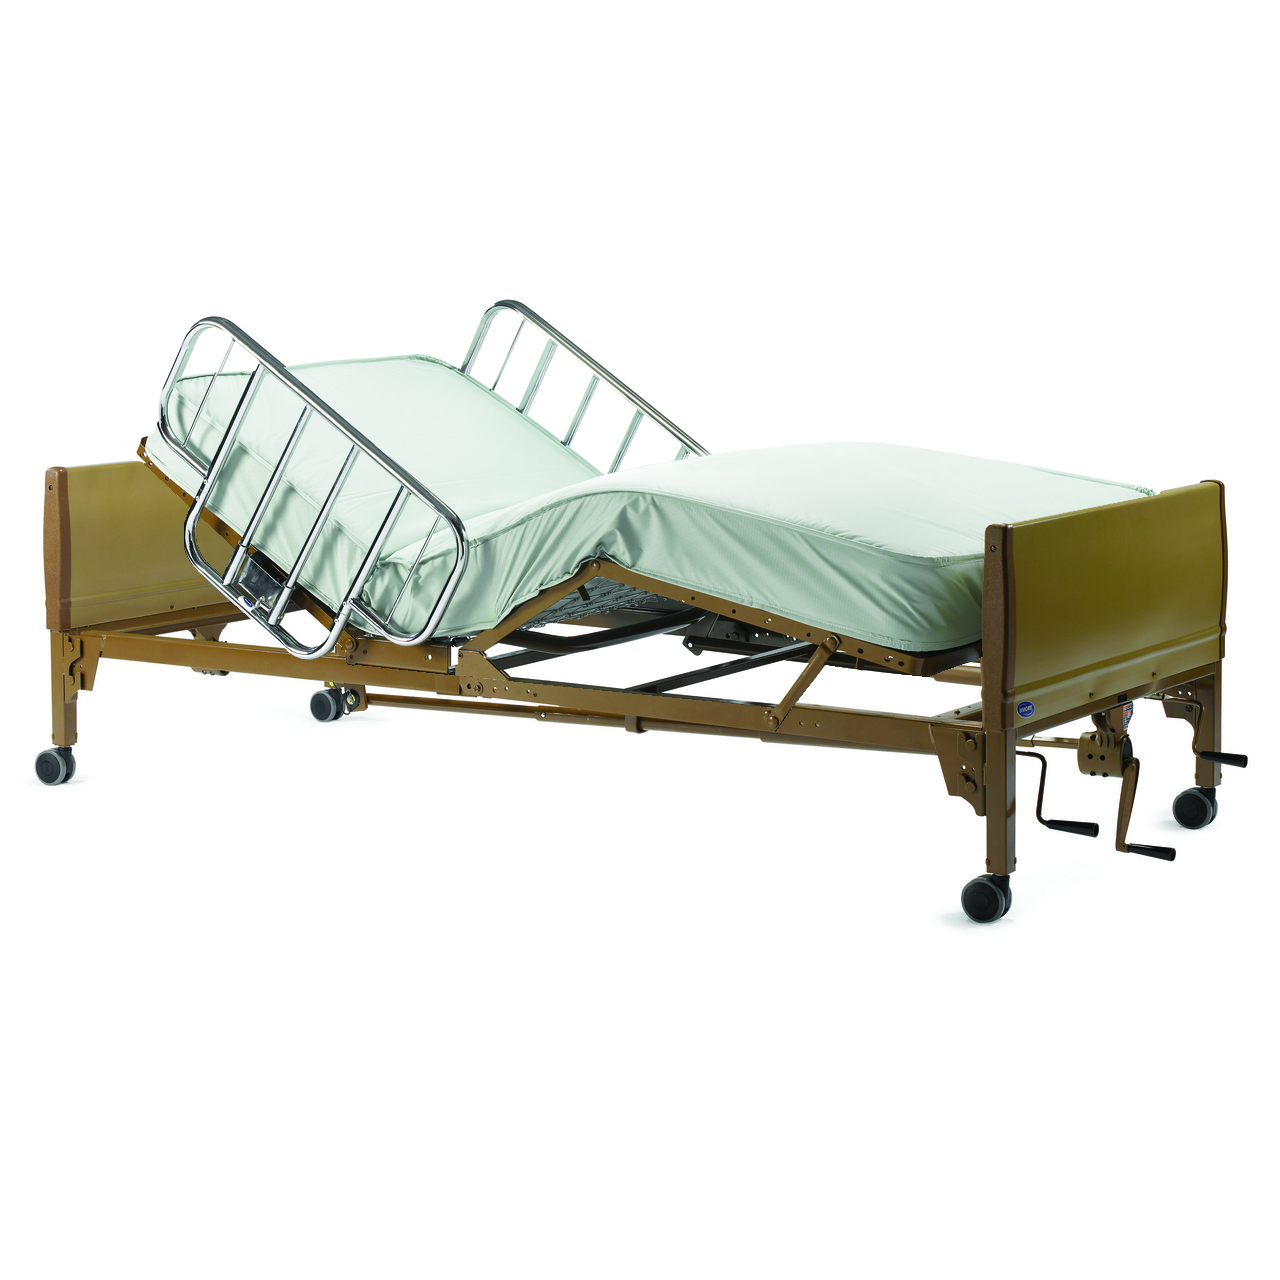 Invacare 5307IVC Manual Hospital Bed Features Universal